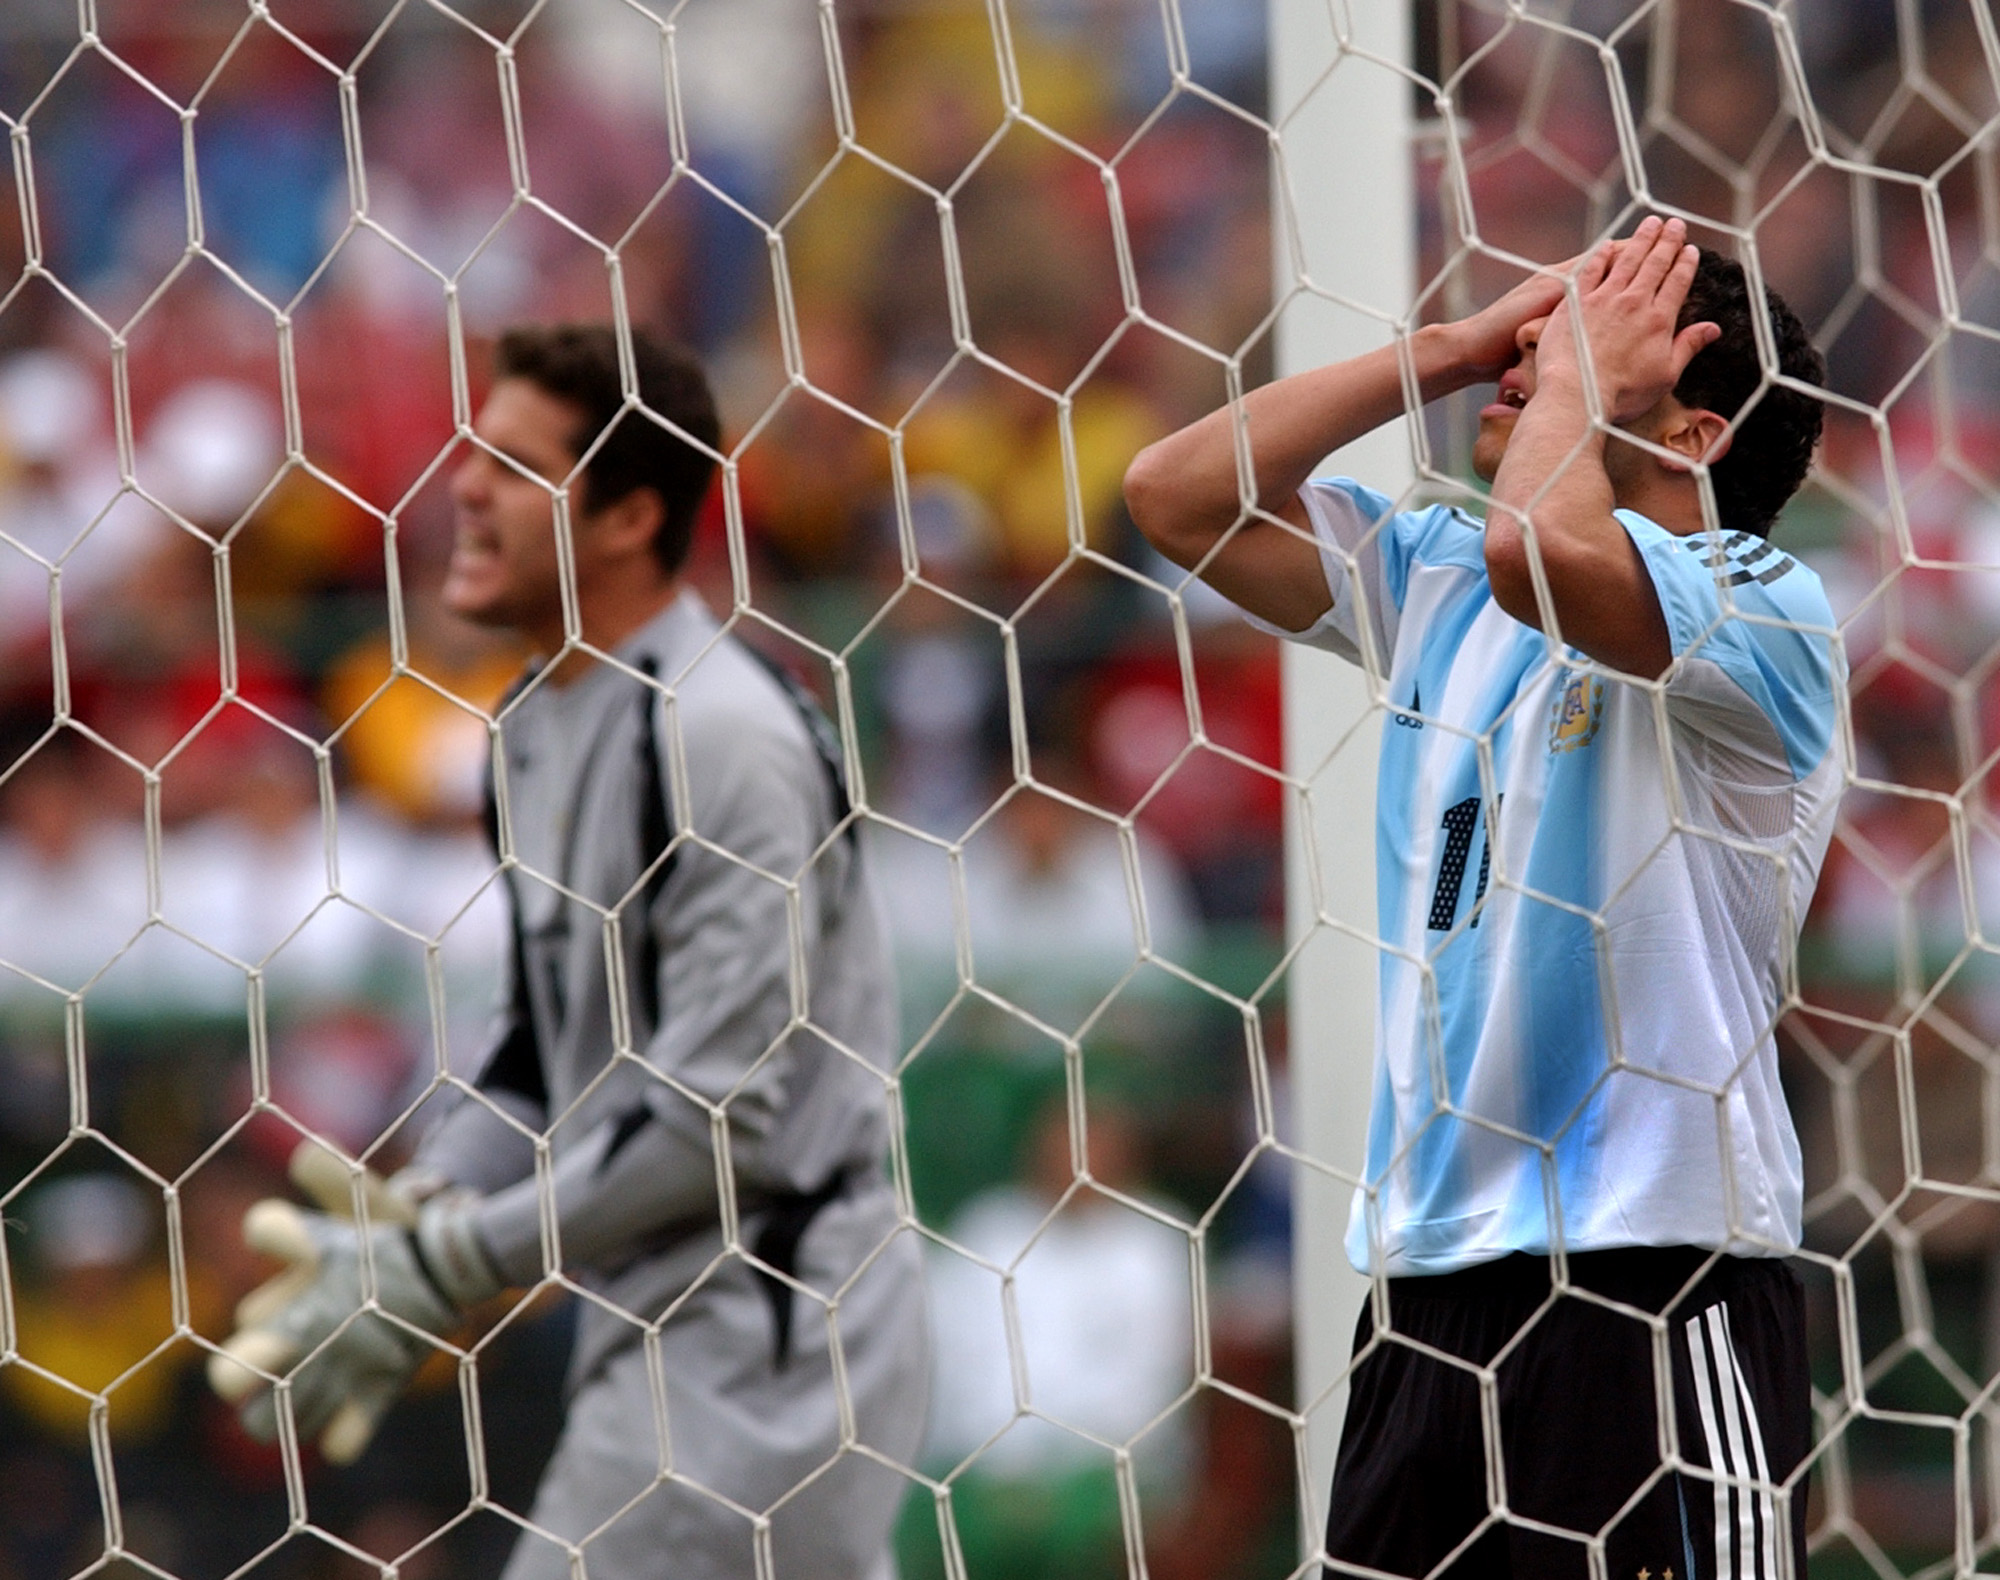 Carlos Tevez of Argentina covers his face after missing a chance on goal as Brazil's goalkeeper Julio Cesar is seen at left during their final game of the Copa America, in Lima, Peru, Sunday, July 25, 2004. (AP Photo/Natacha Pisarenko)